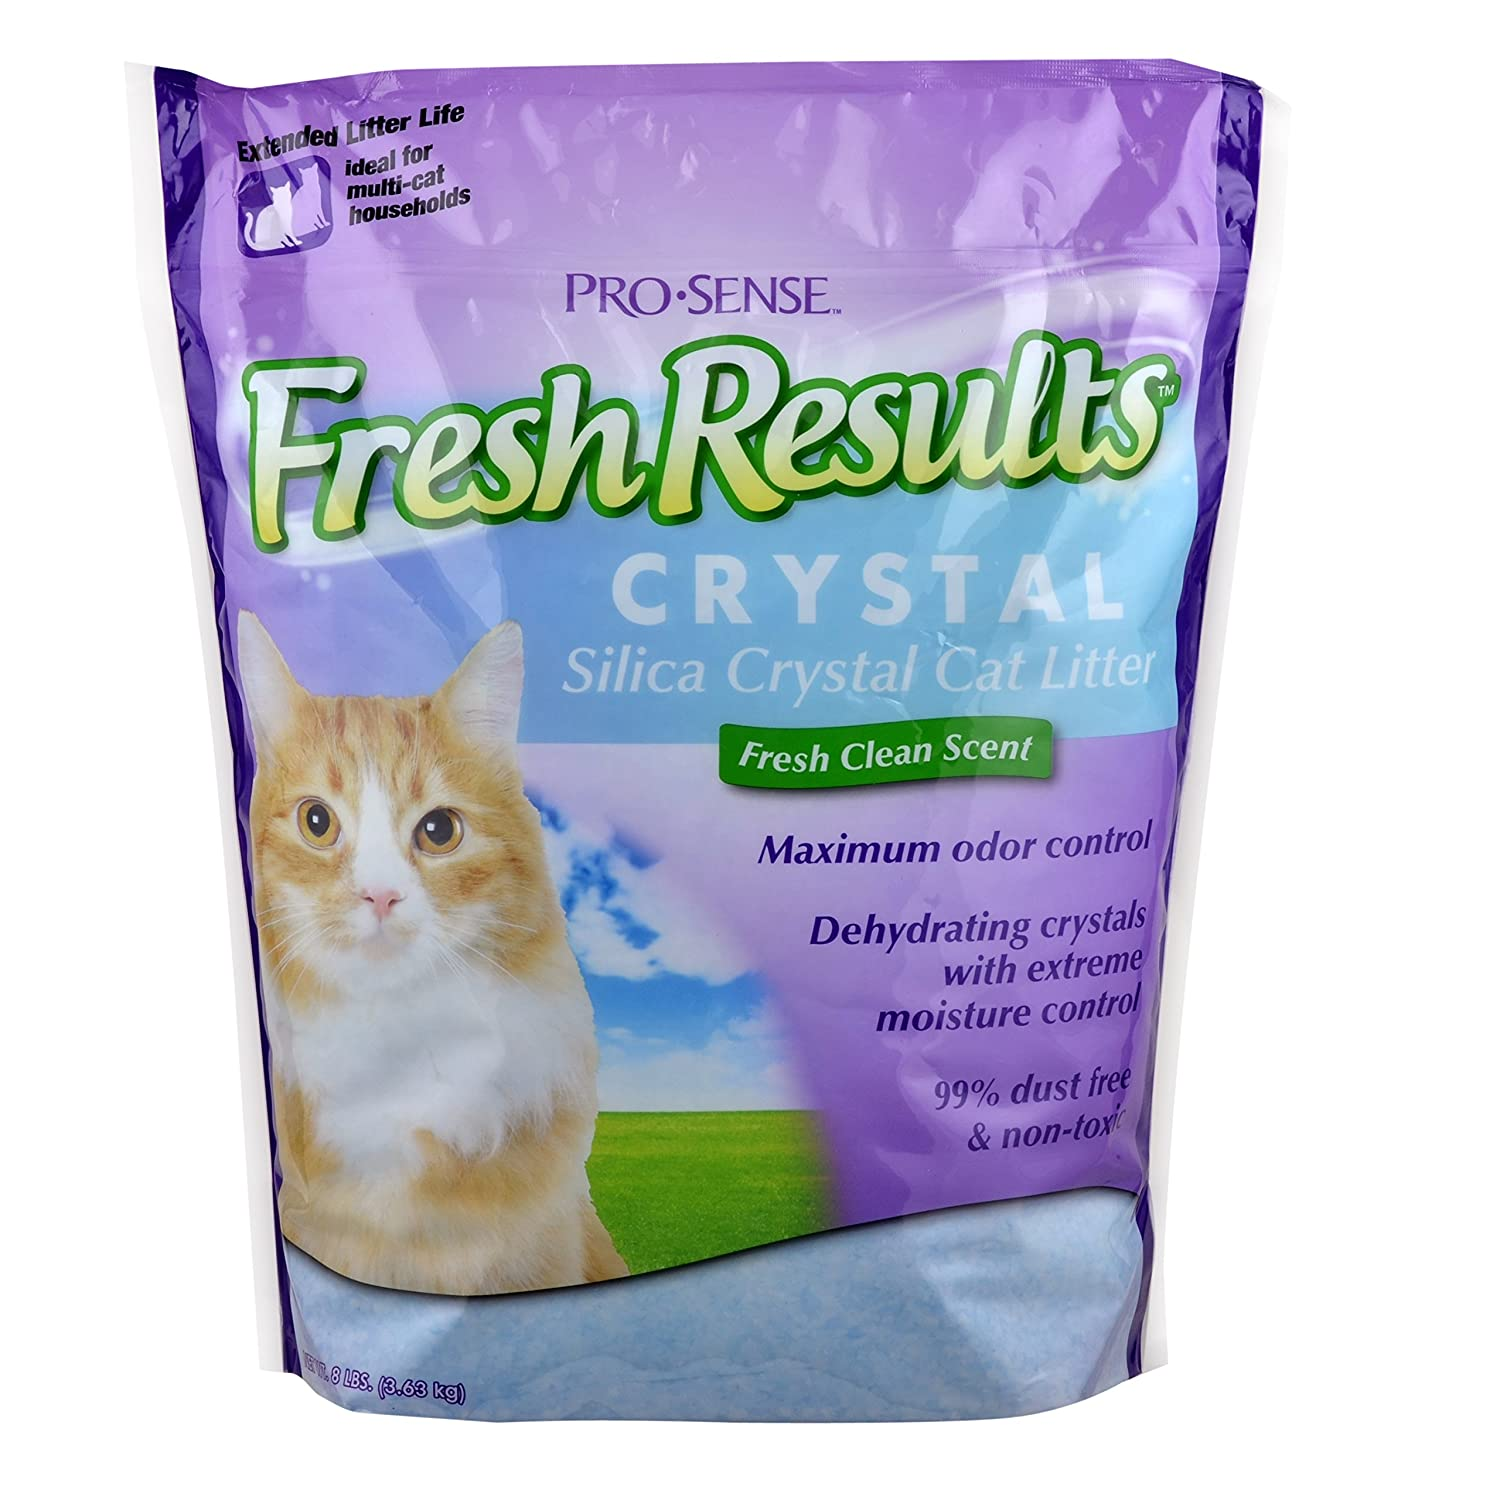 Pro Sense Fresh Results Crystal Silica Cat Litter